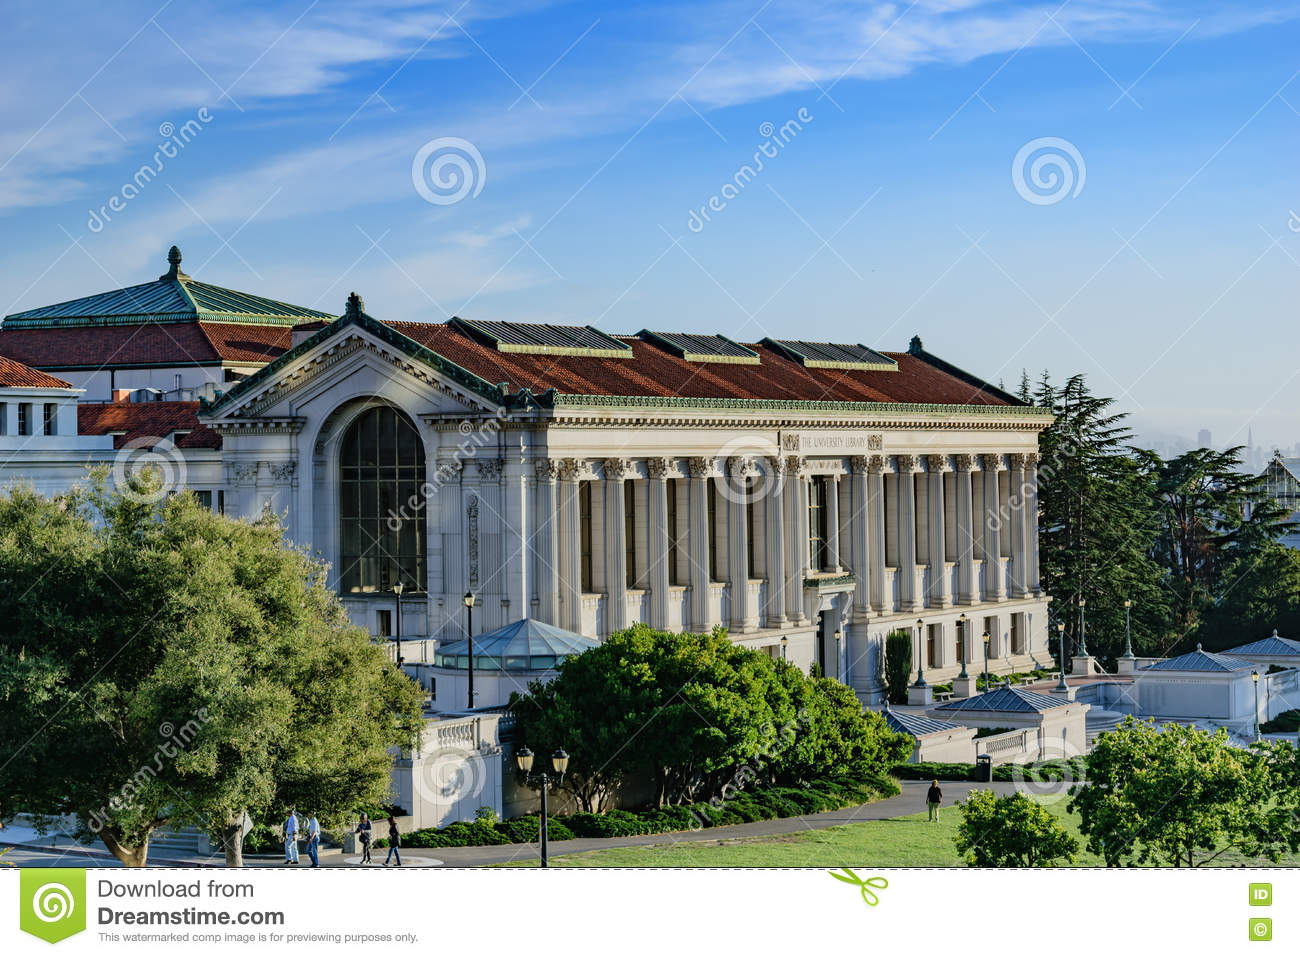 Universidad de California Berkeley